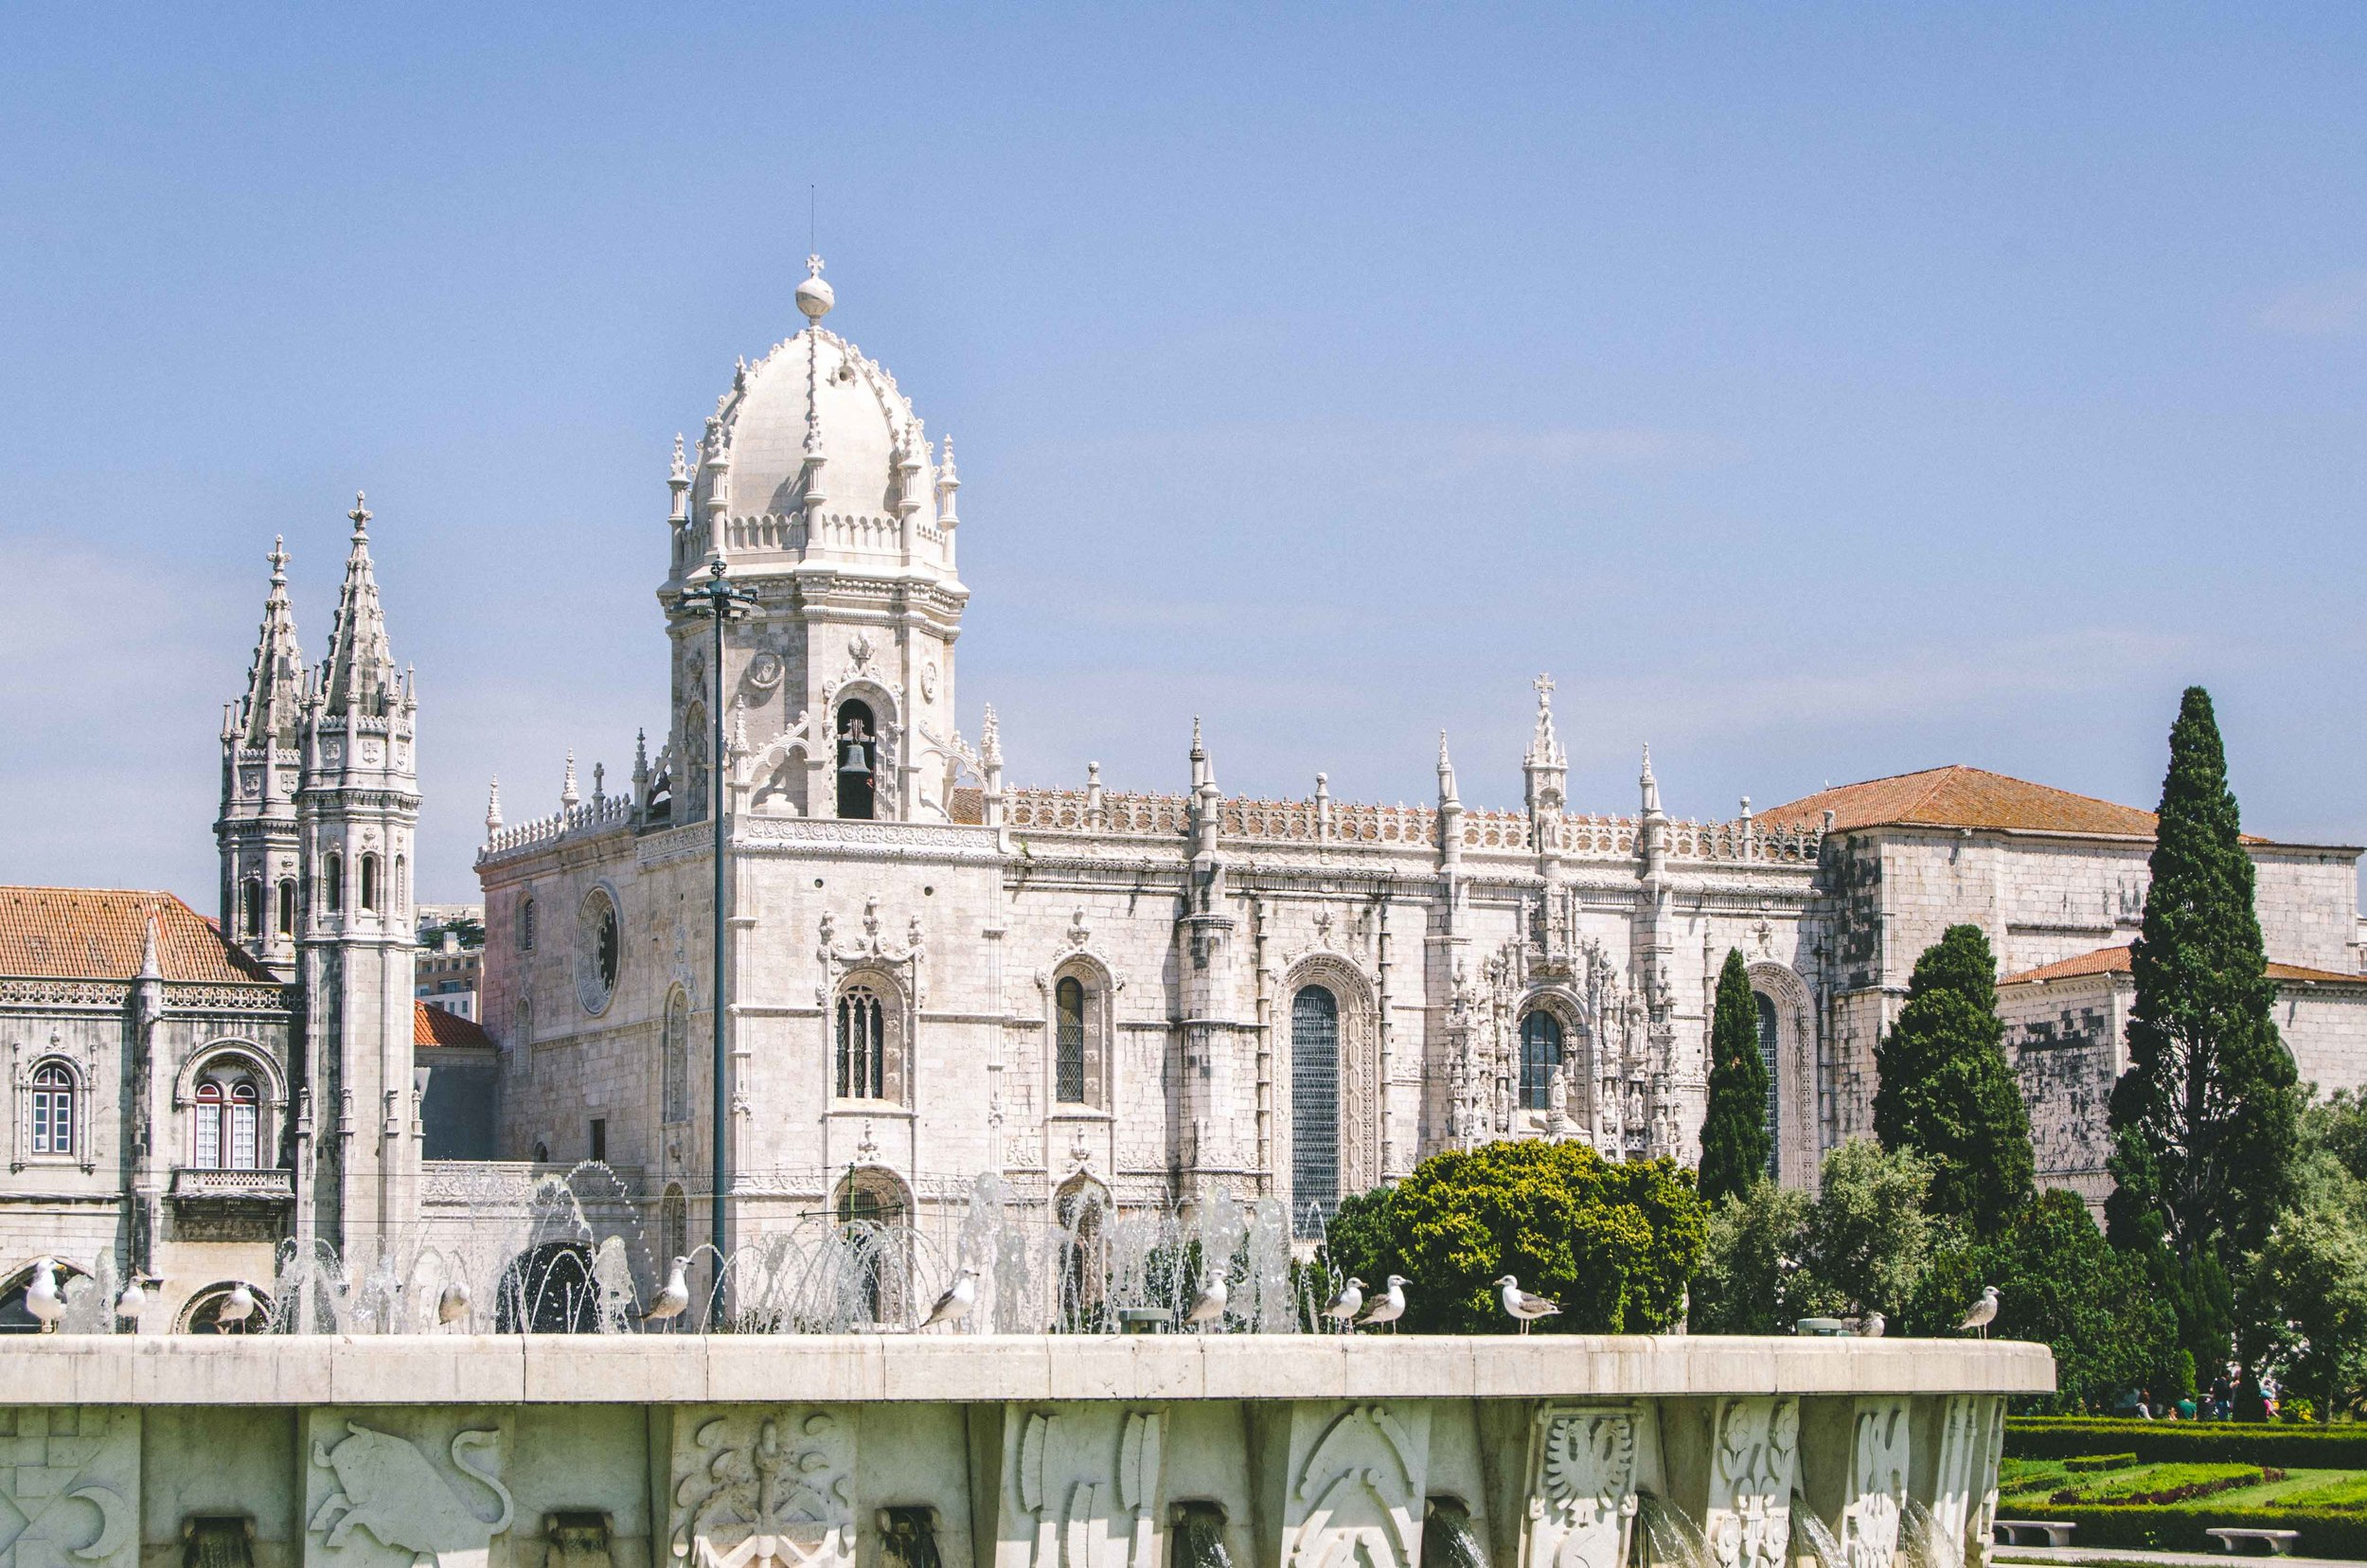 Mosteiro dos Jerónimos, former monastery and current UNESCO World Heritage Site